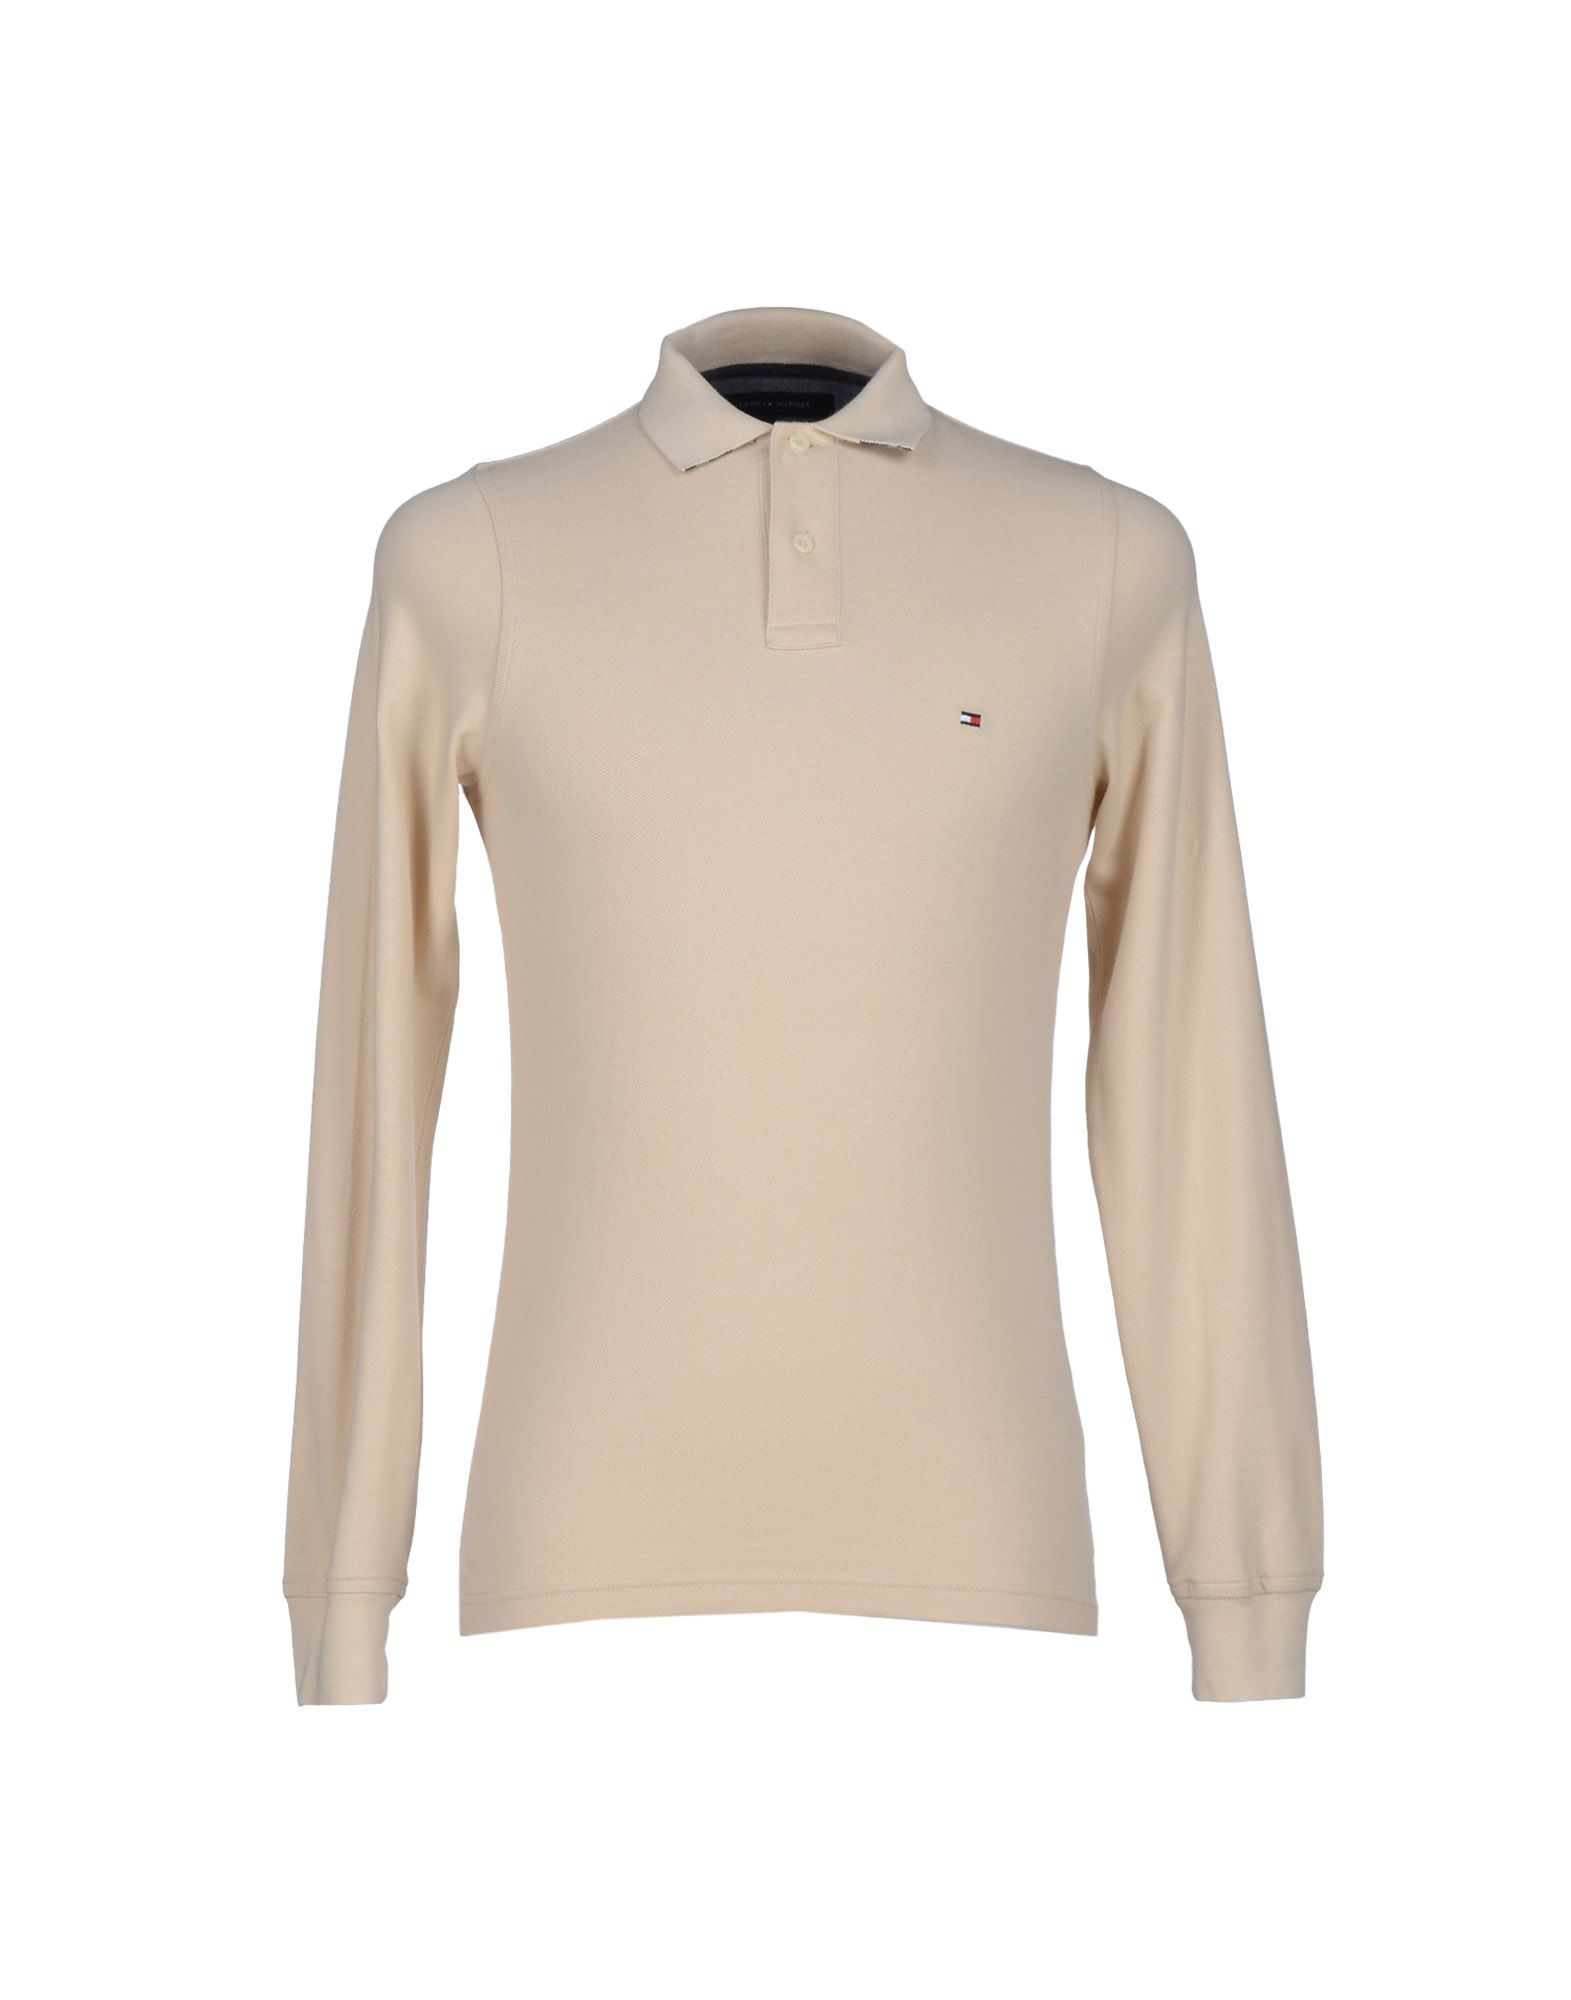 tommy hilfiger polo shirt in beige for men lyst. Black Bedroom Furniture Sets. Home Design Ideas